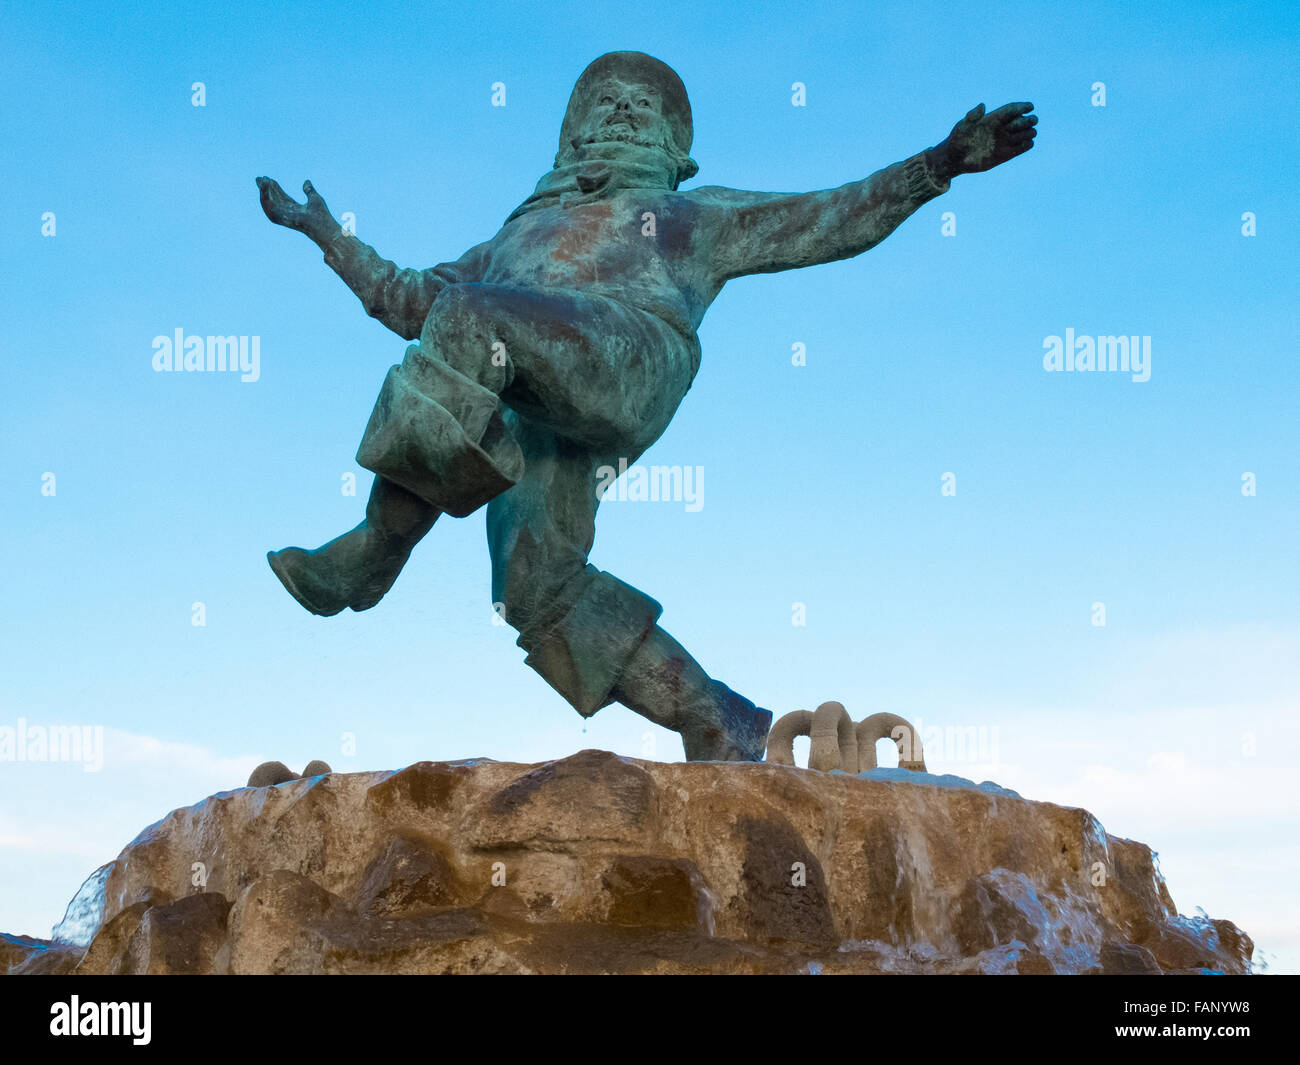 The Jolly Fisherman statue in Compass Gardens,Tower Gardens near the sea front in Skegness. - Stock Image